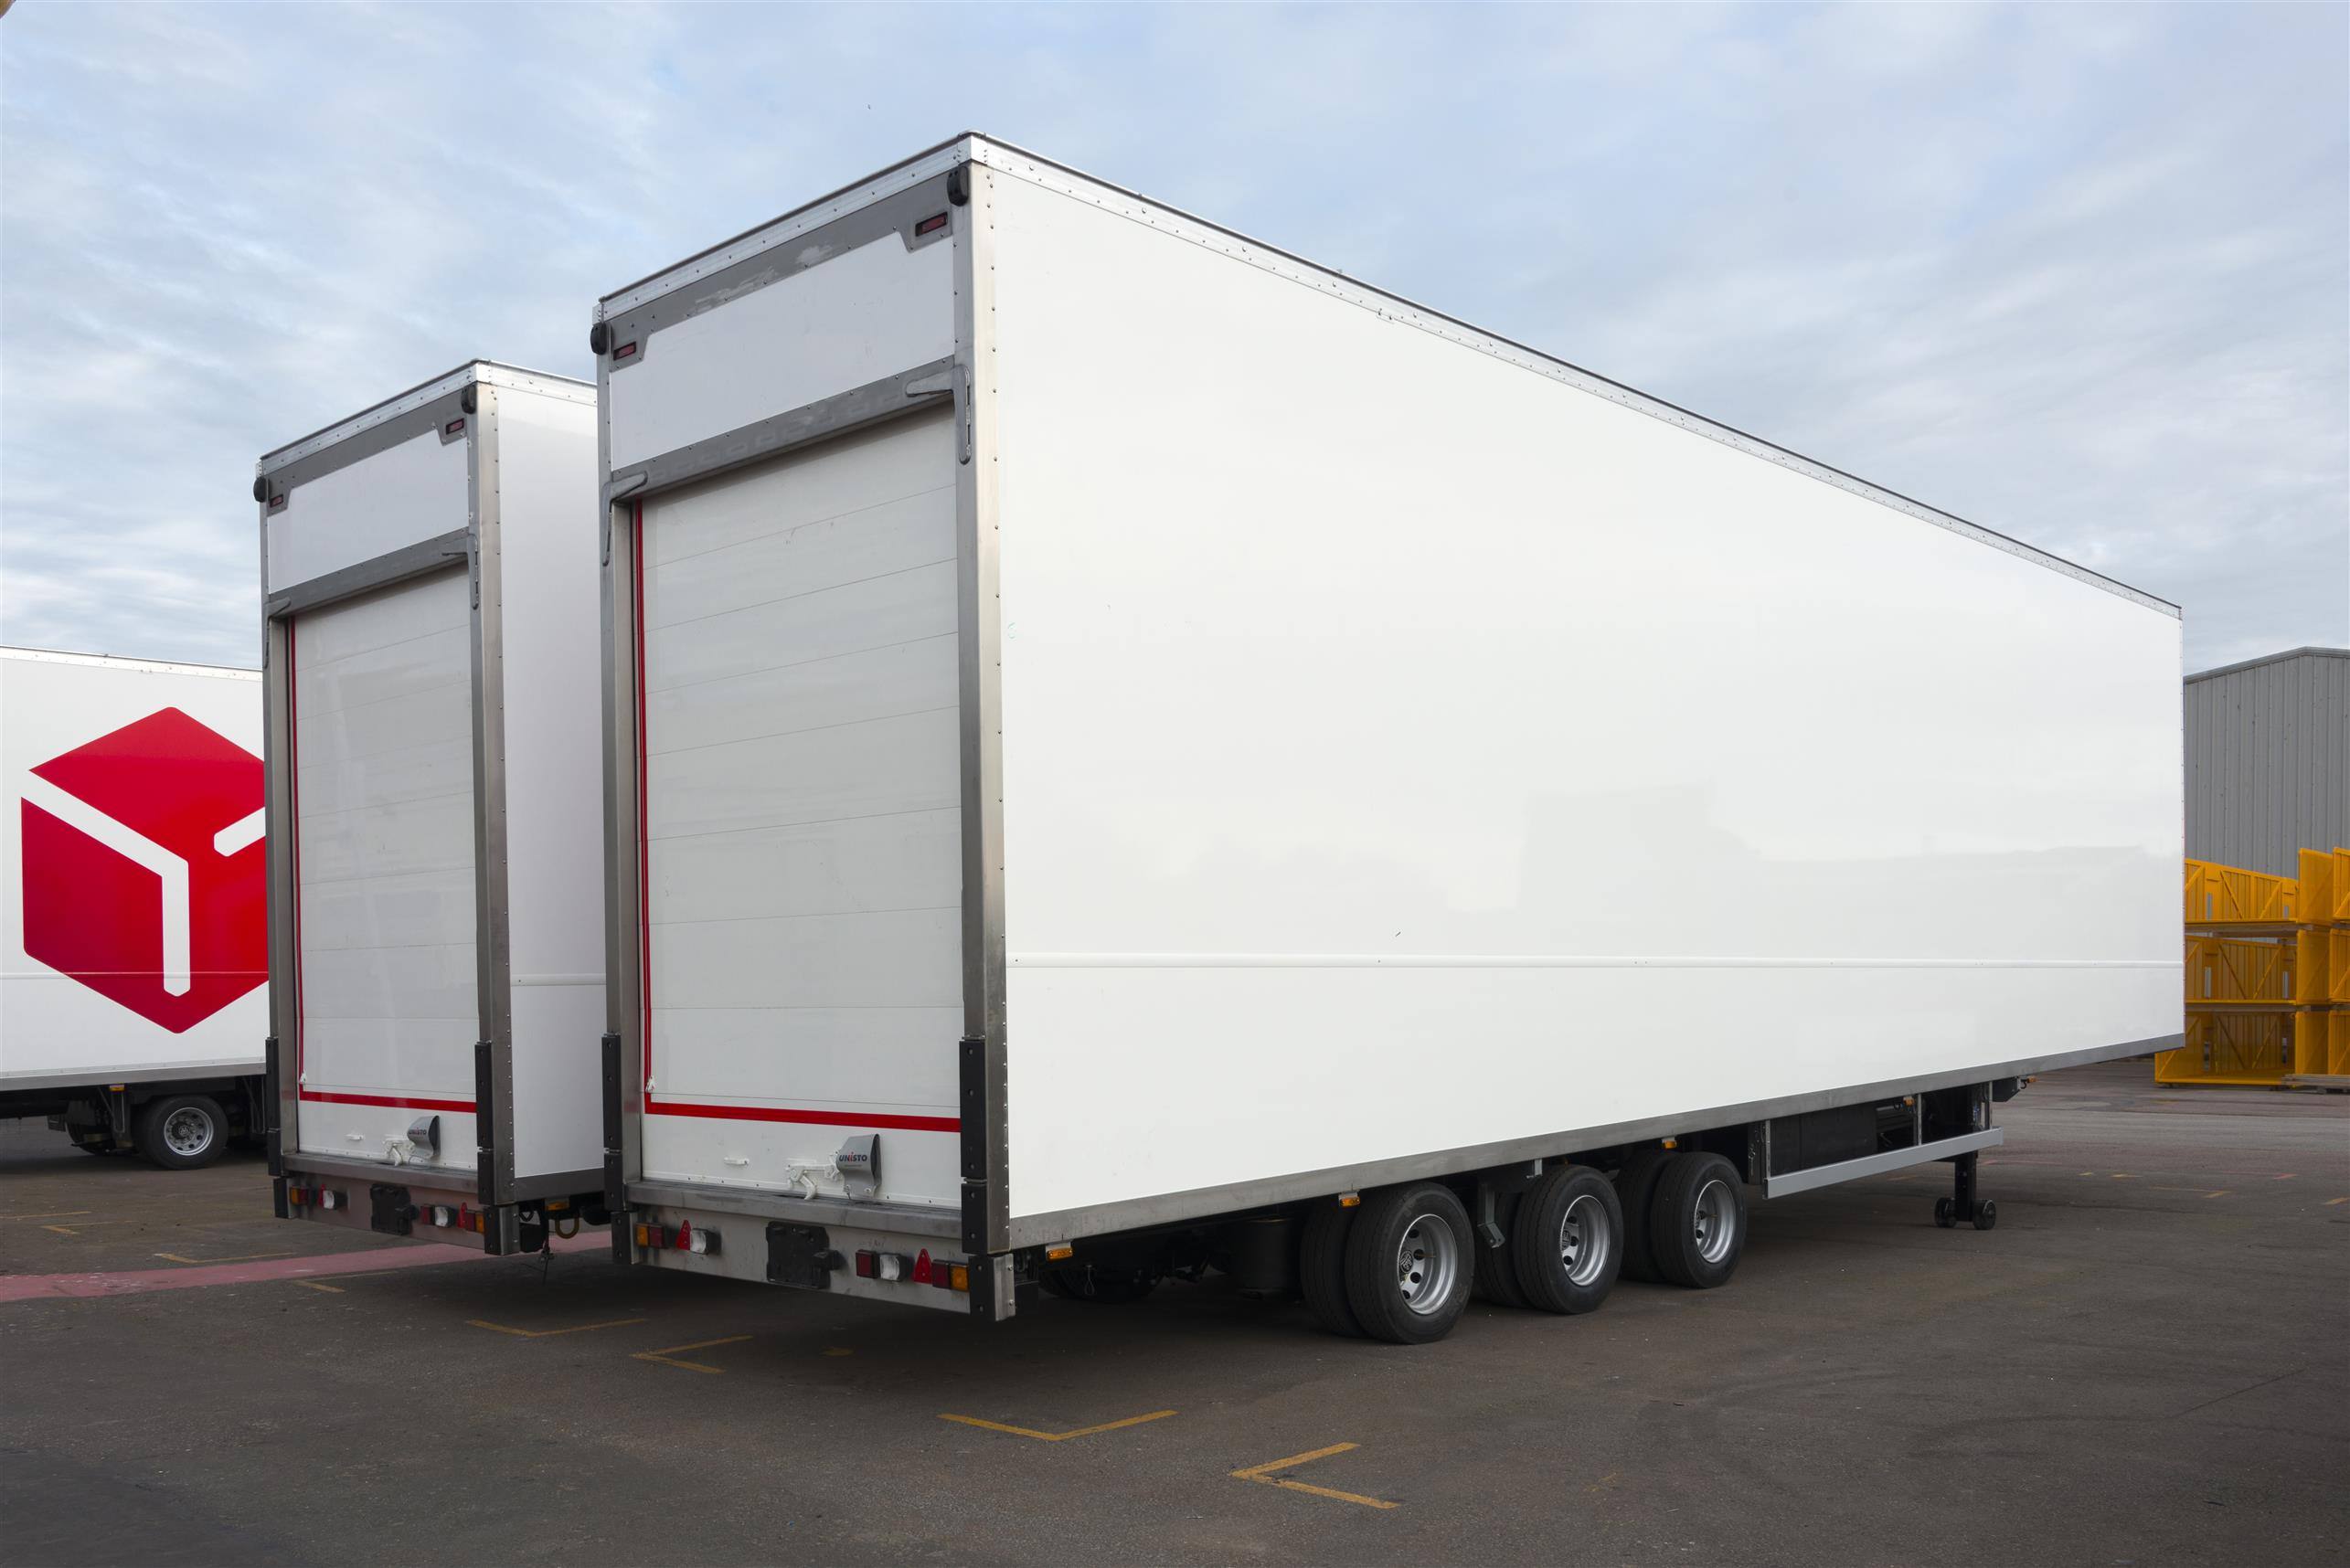 GRP laminates for refrigerated and industrial vehicles